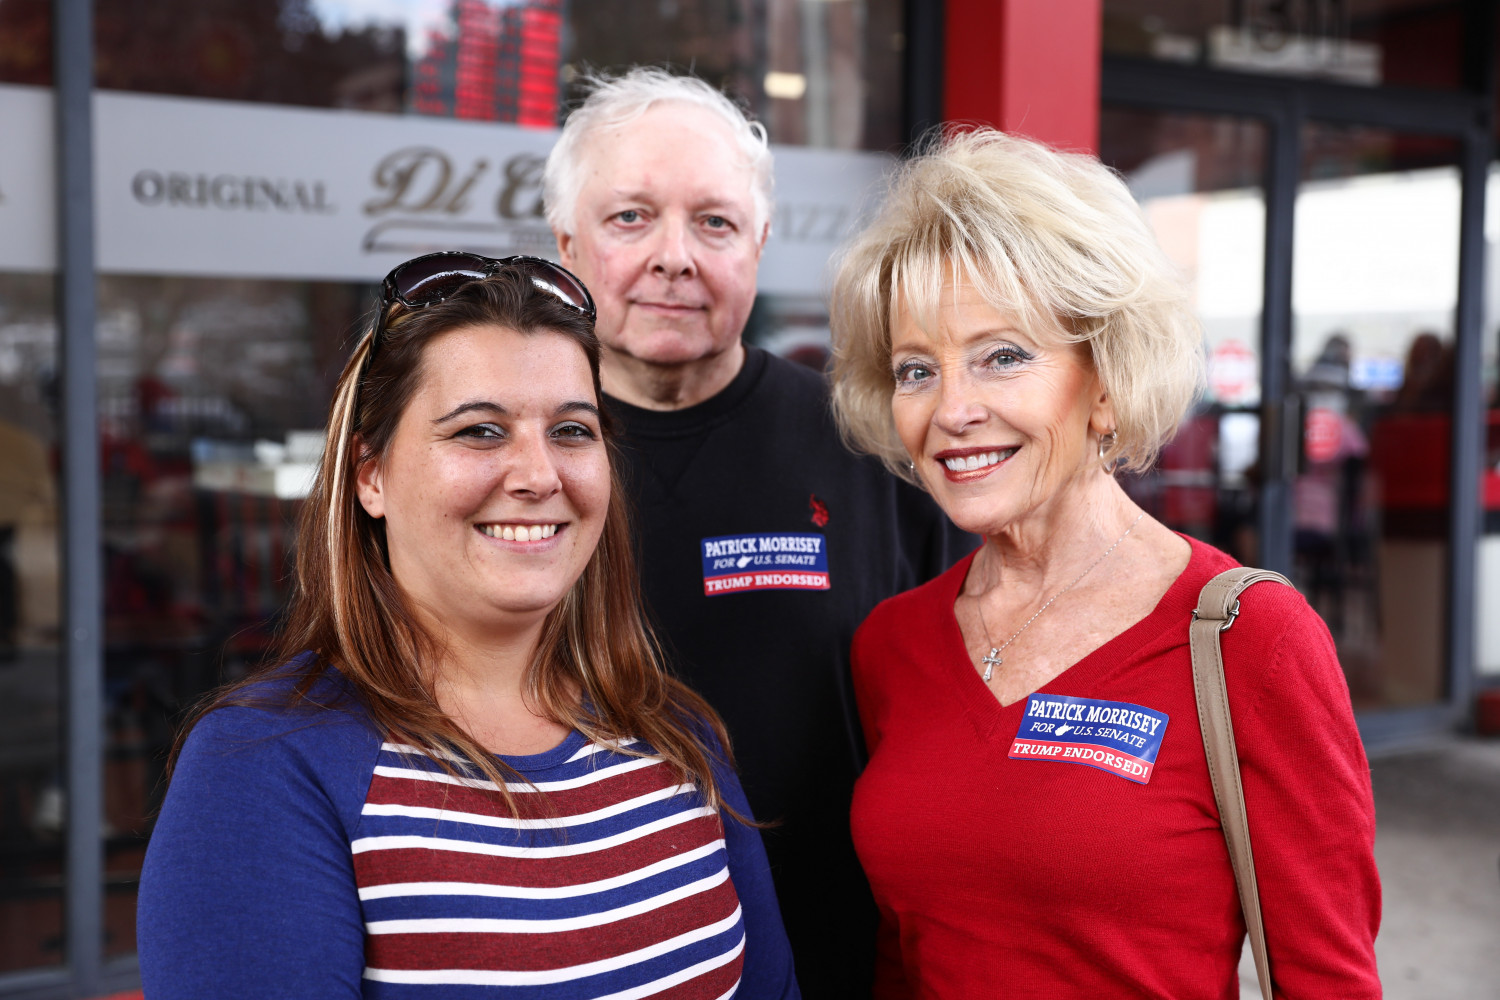 Jo Ann Gould (R) and friends before a Make America Great Again rally